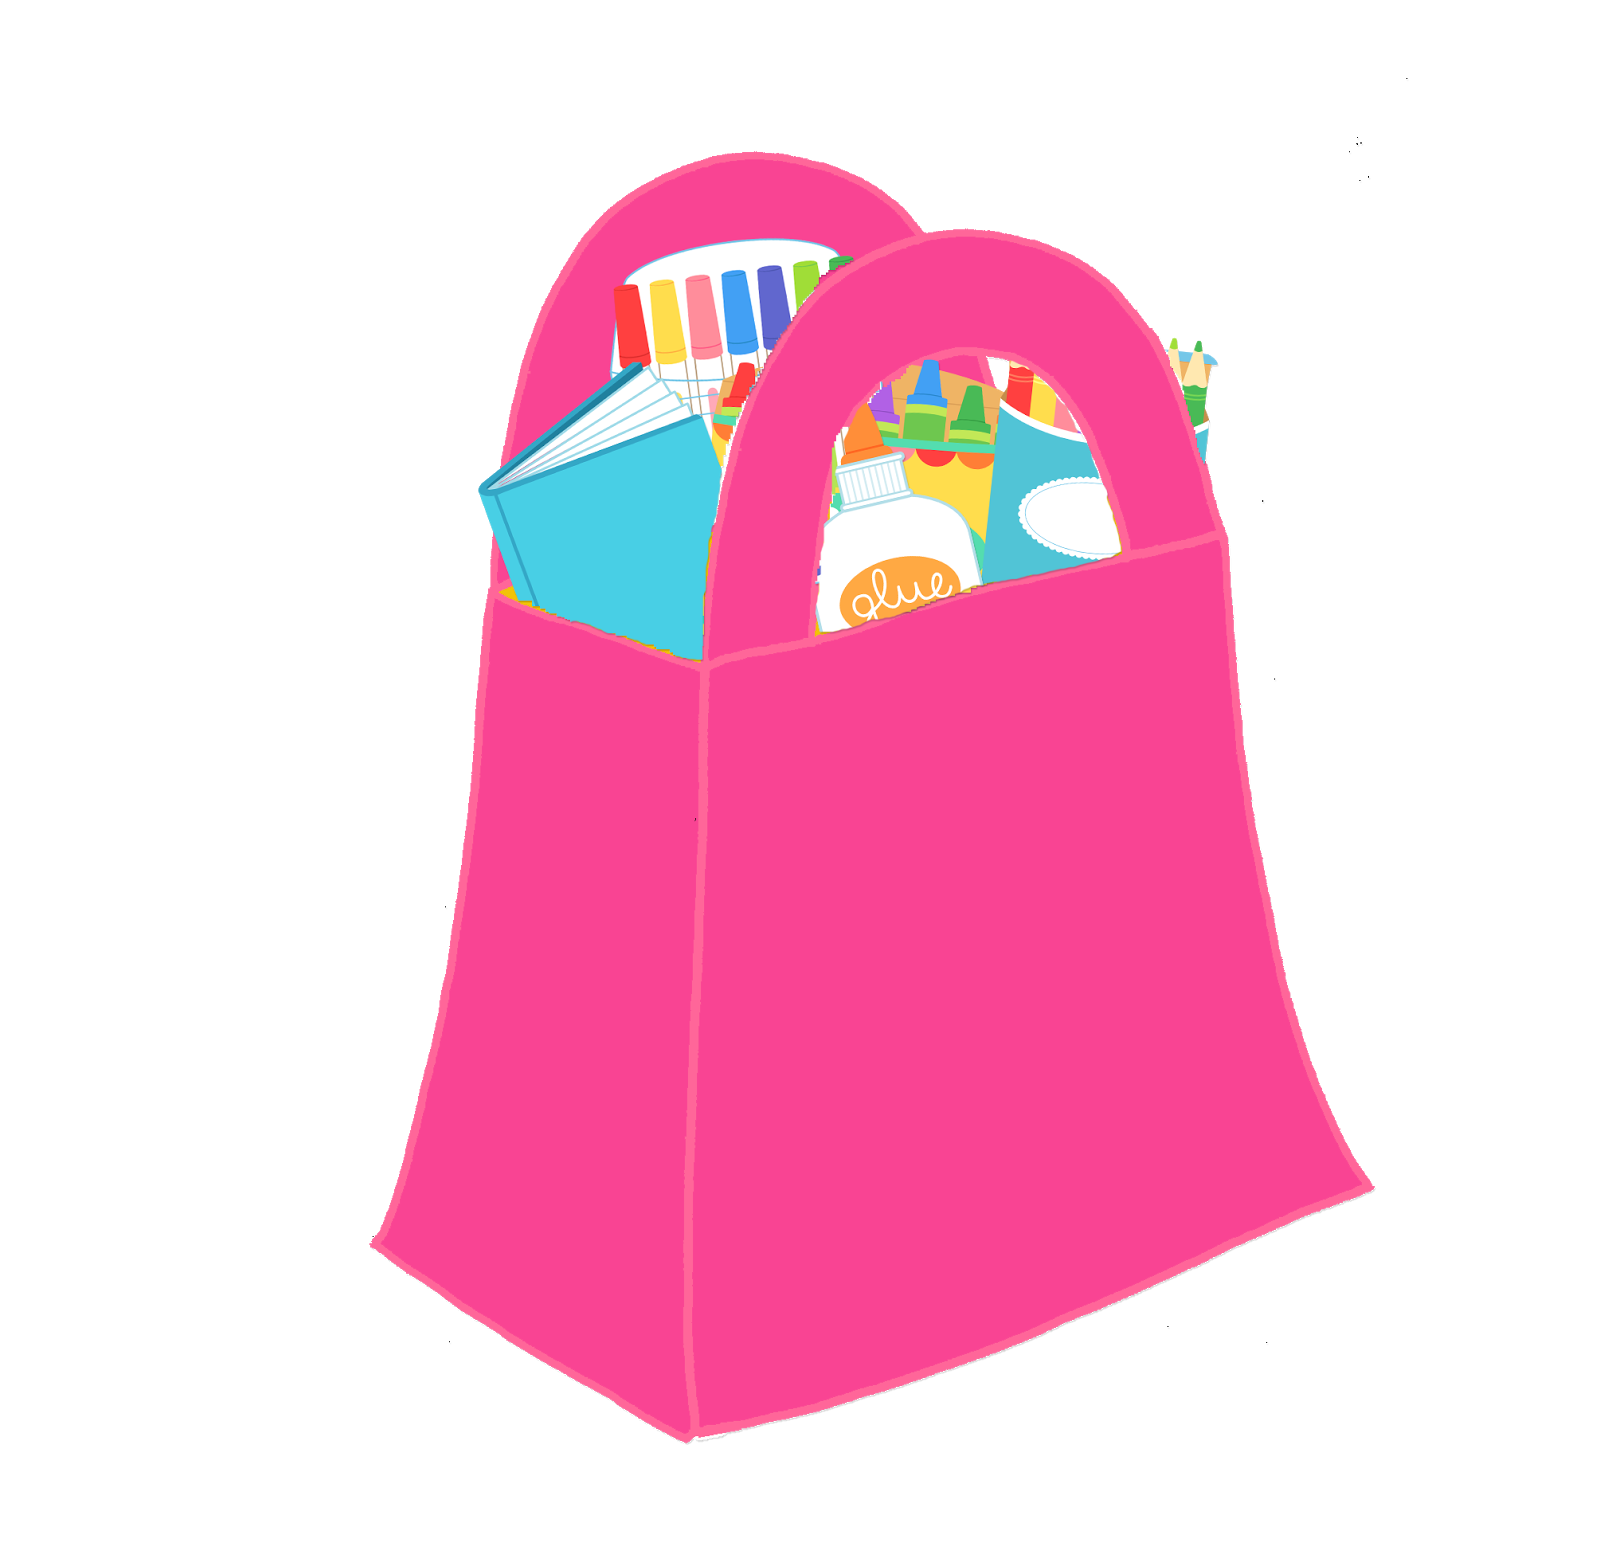 Luggage clipart cute. Shopping bag clip art